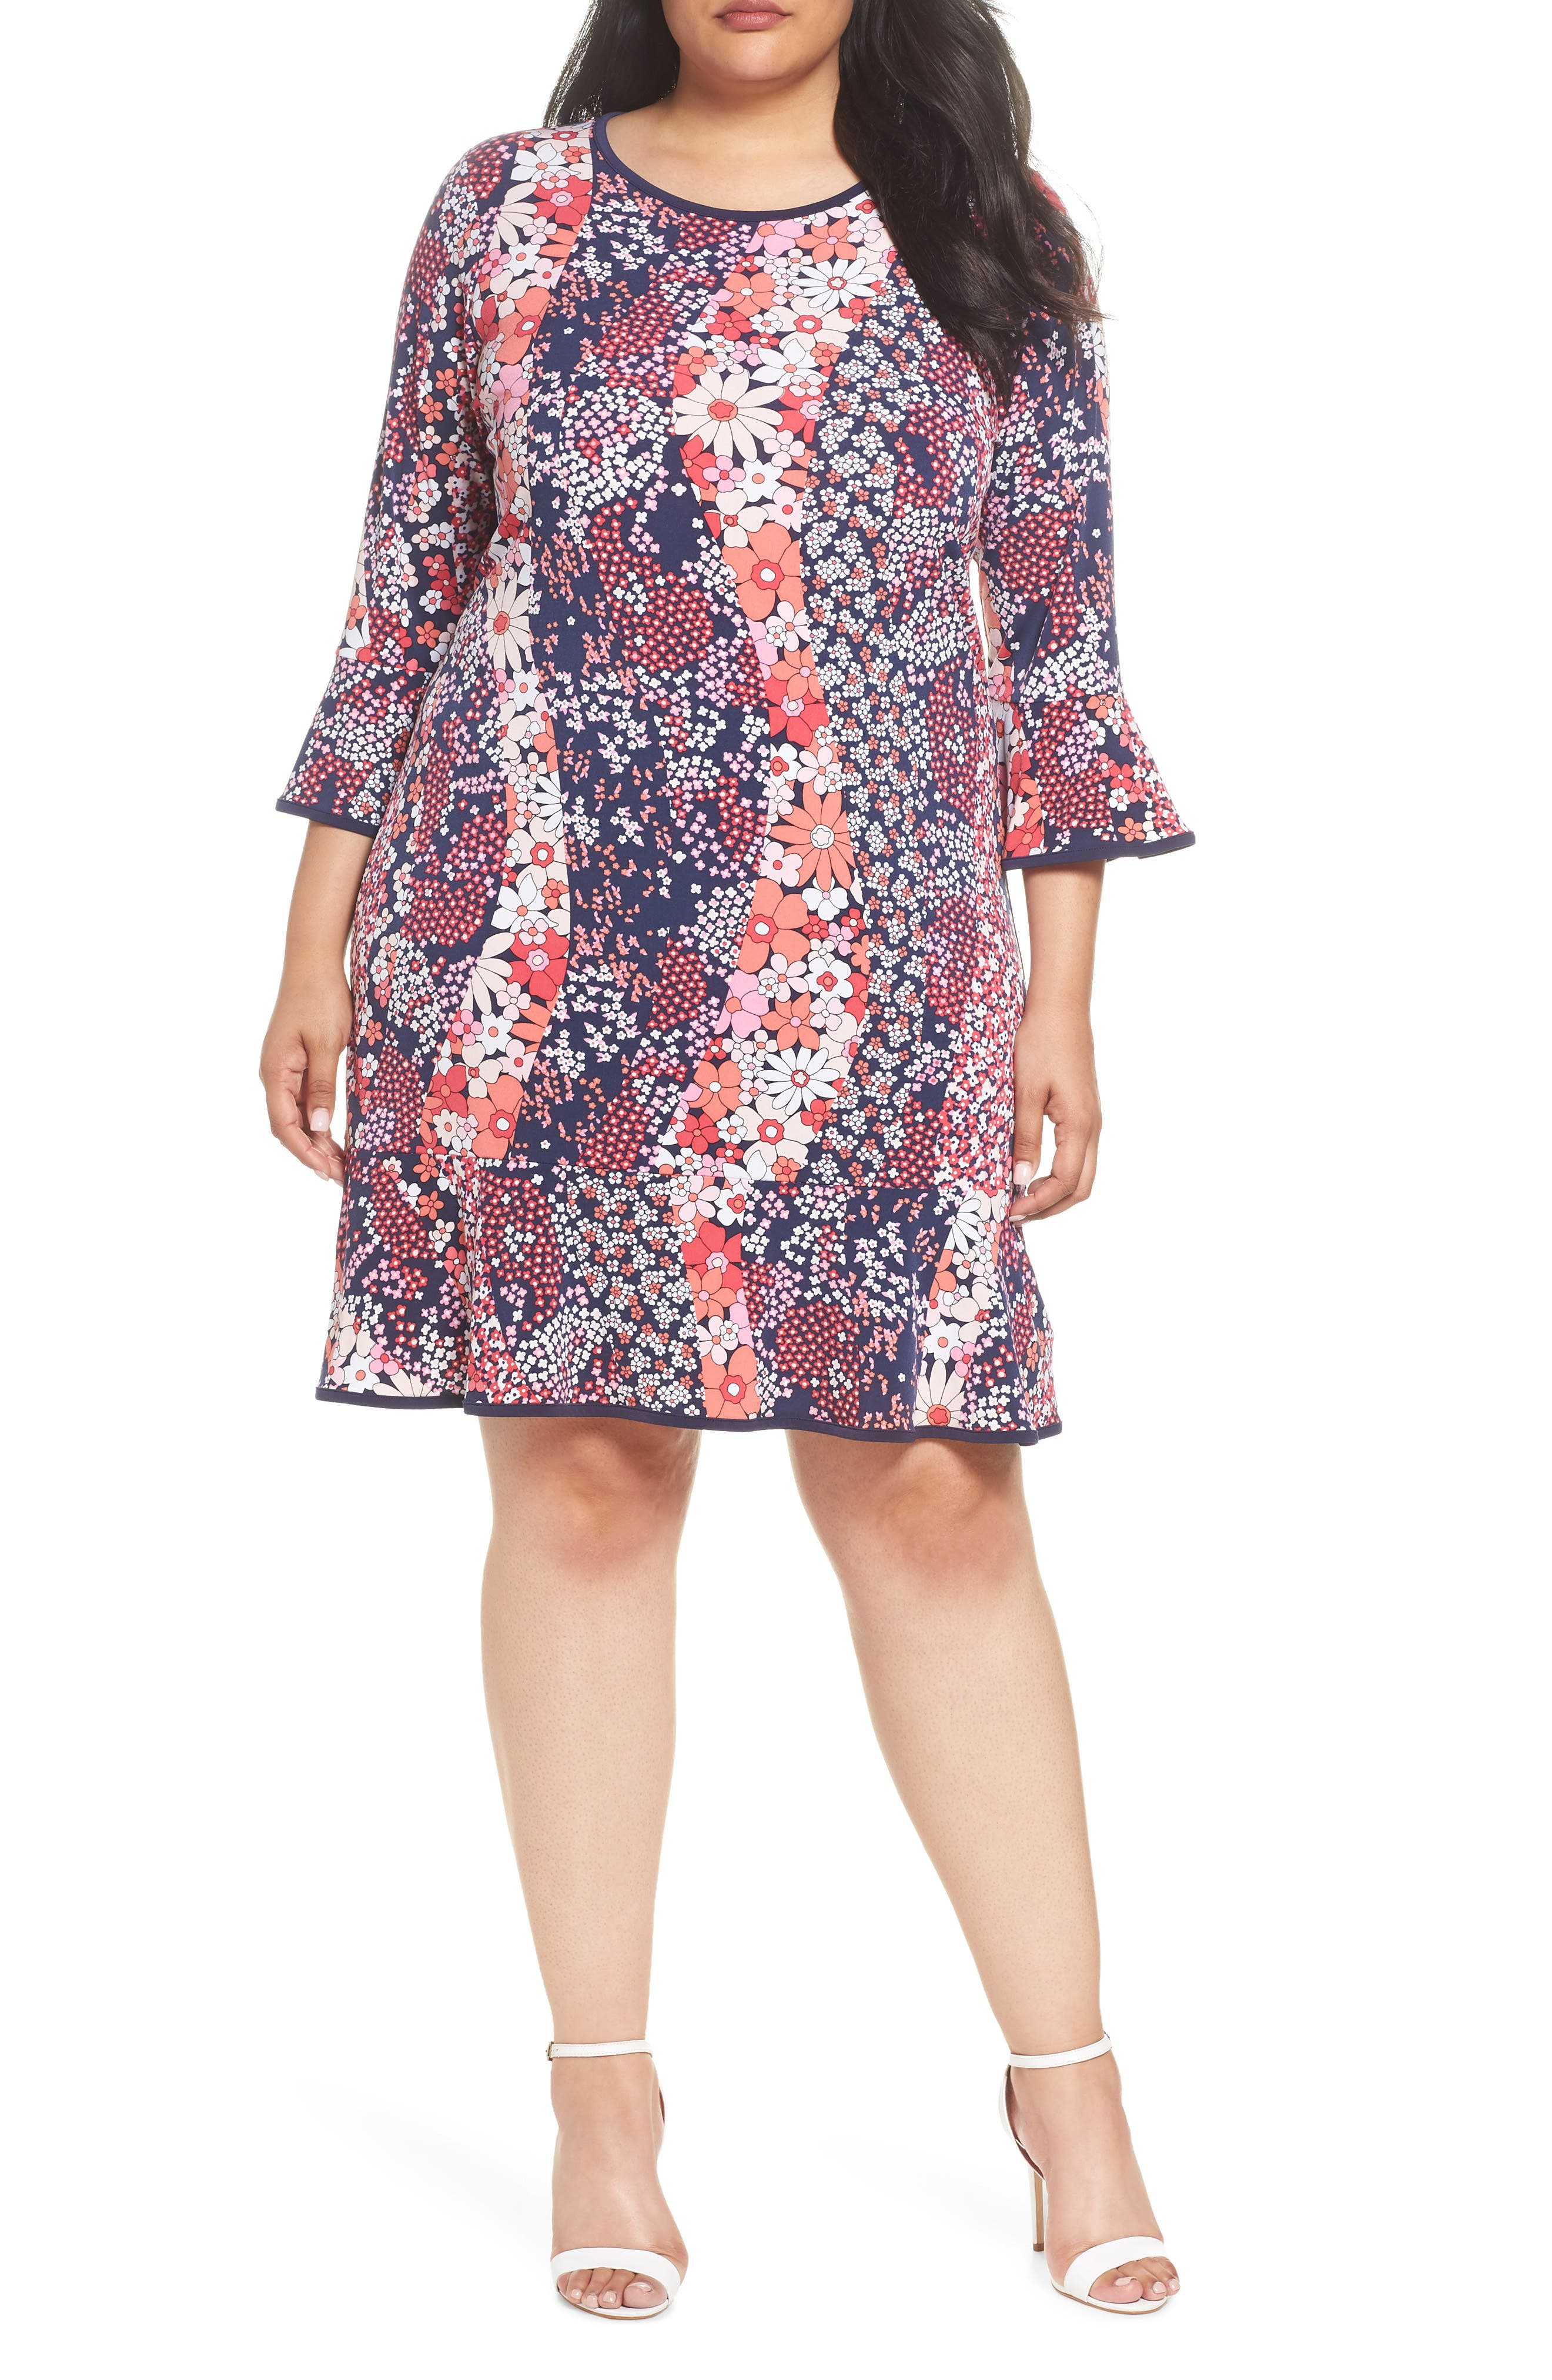 Patchwork Floral Bell Sleeve Shift Dress,                             Main thumbnail 1, color,                             True Navy/ Bright Blush